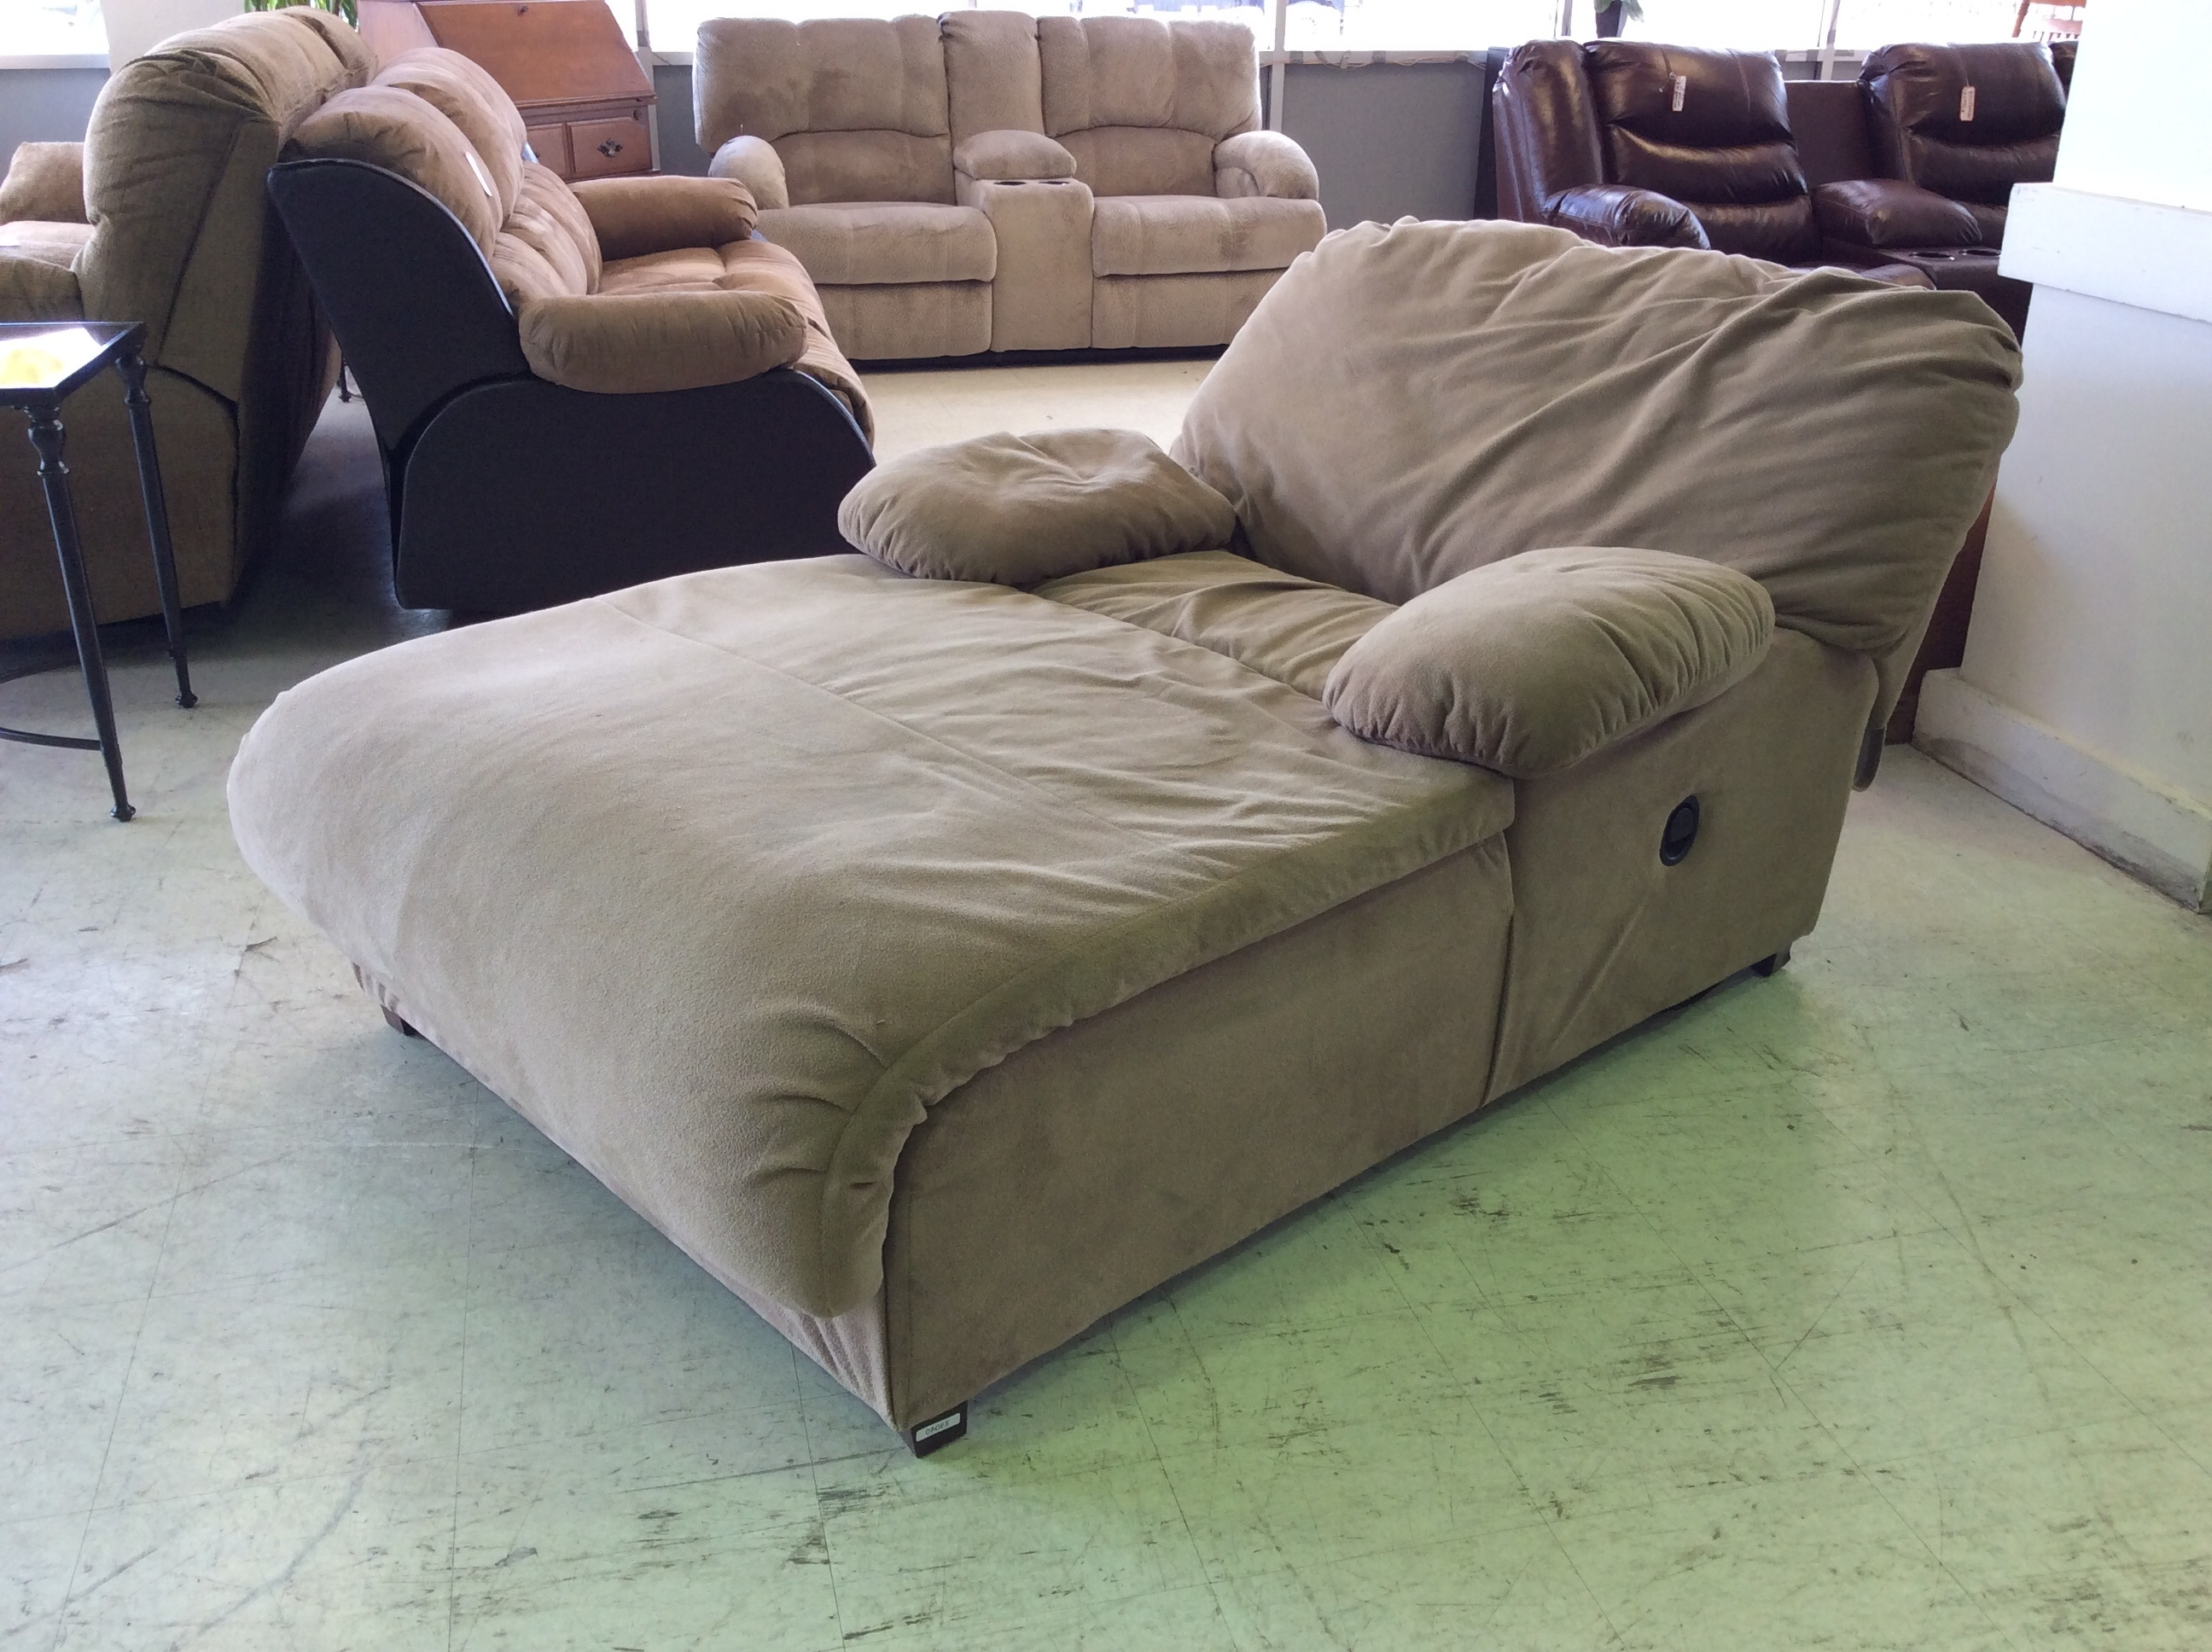 Well Known Reclining Chaise Lounges Inside Lounge Chair : Bedroom Chaise Lounge Chairs For Awesome Bedroom (View 14 of 15)